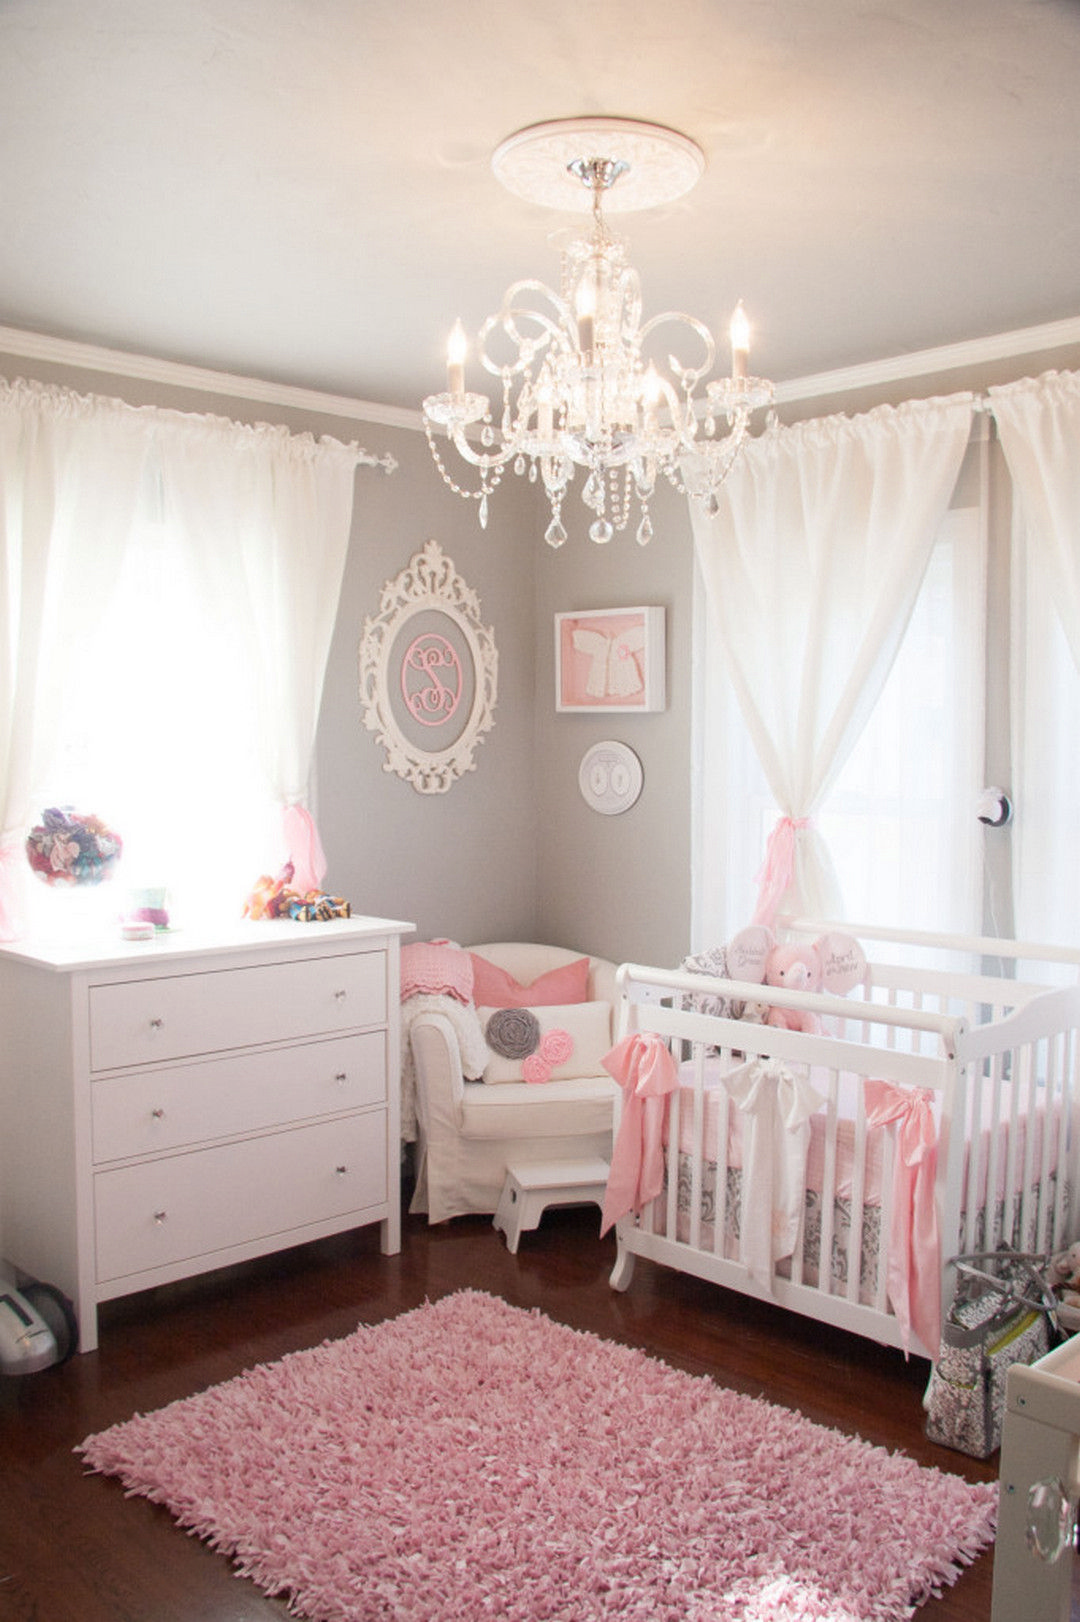 Project Nursery Tiny Pink and Gray